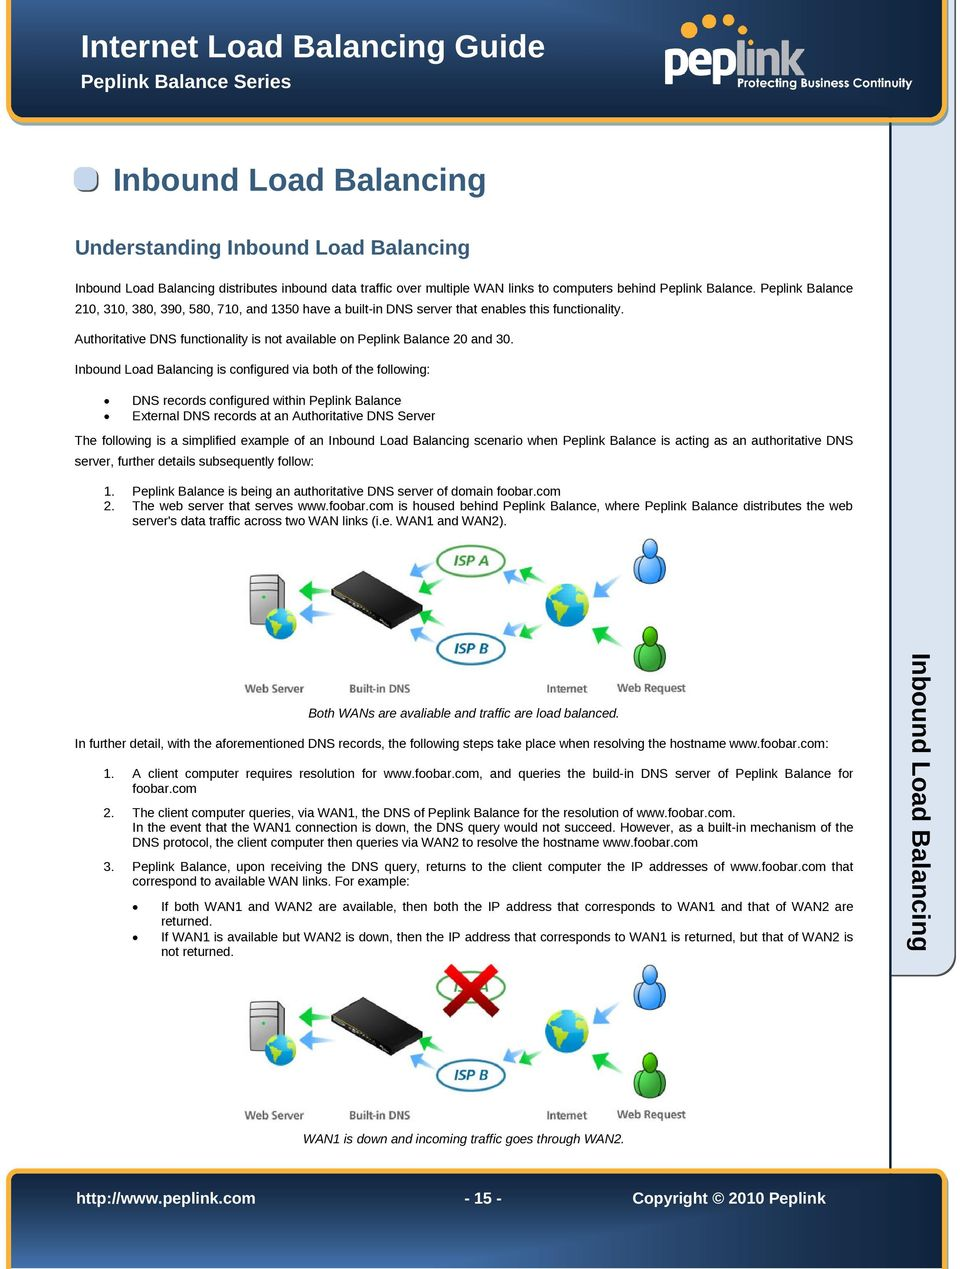 Inbound Load Balancing is configured via both of the following: DNS records configured within Peplink Balance External DNS records at an Authoritative DNS Server The following is a simplified example